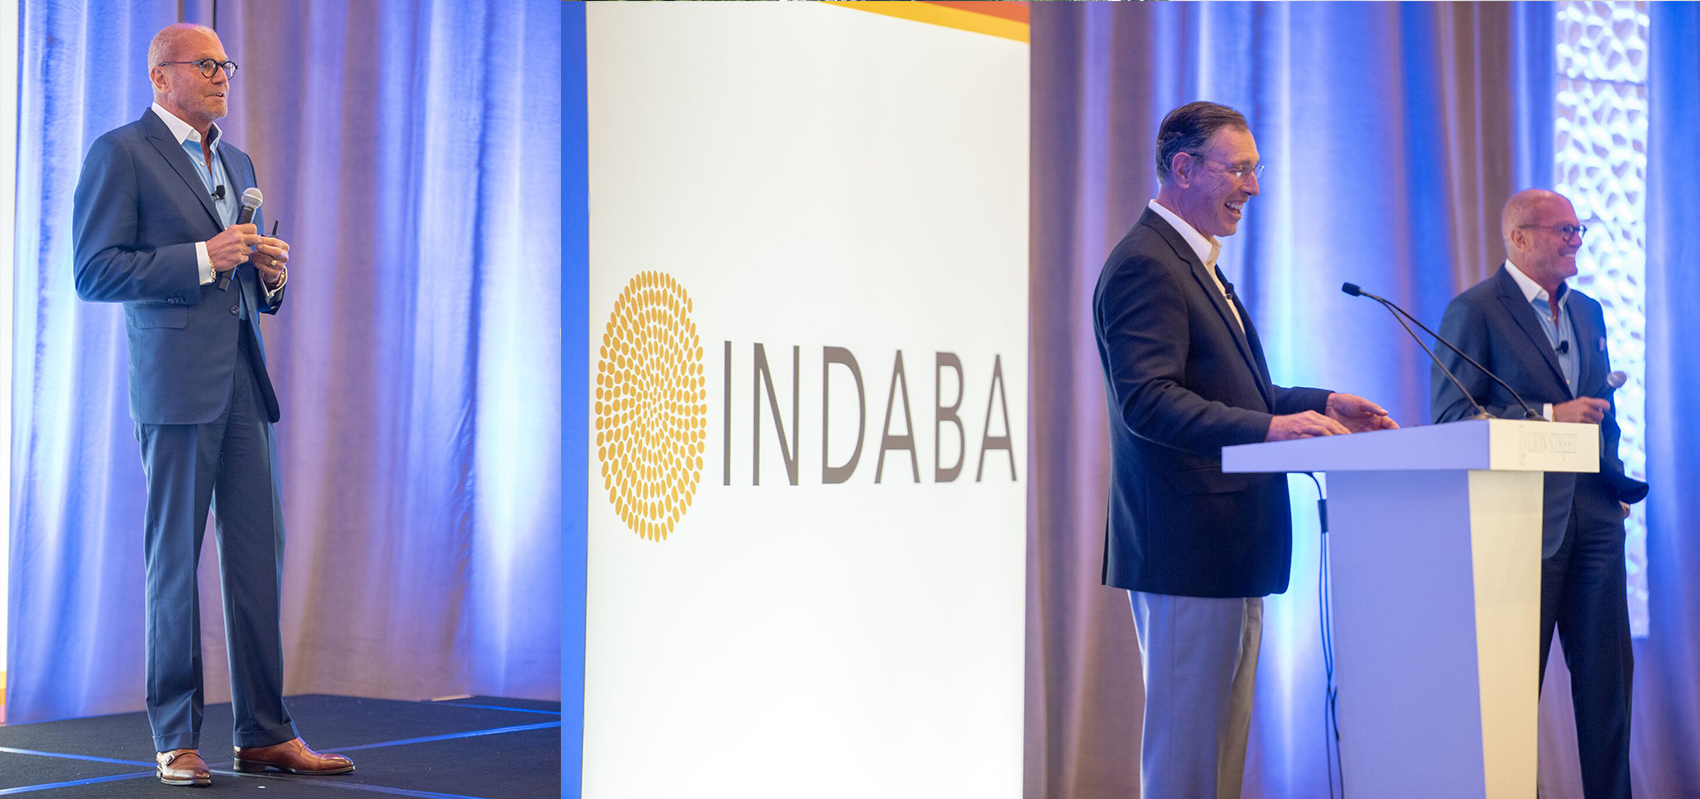 Lion Street's Annual Indaba Meeting